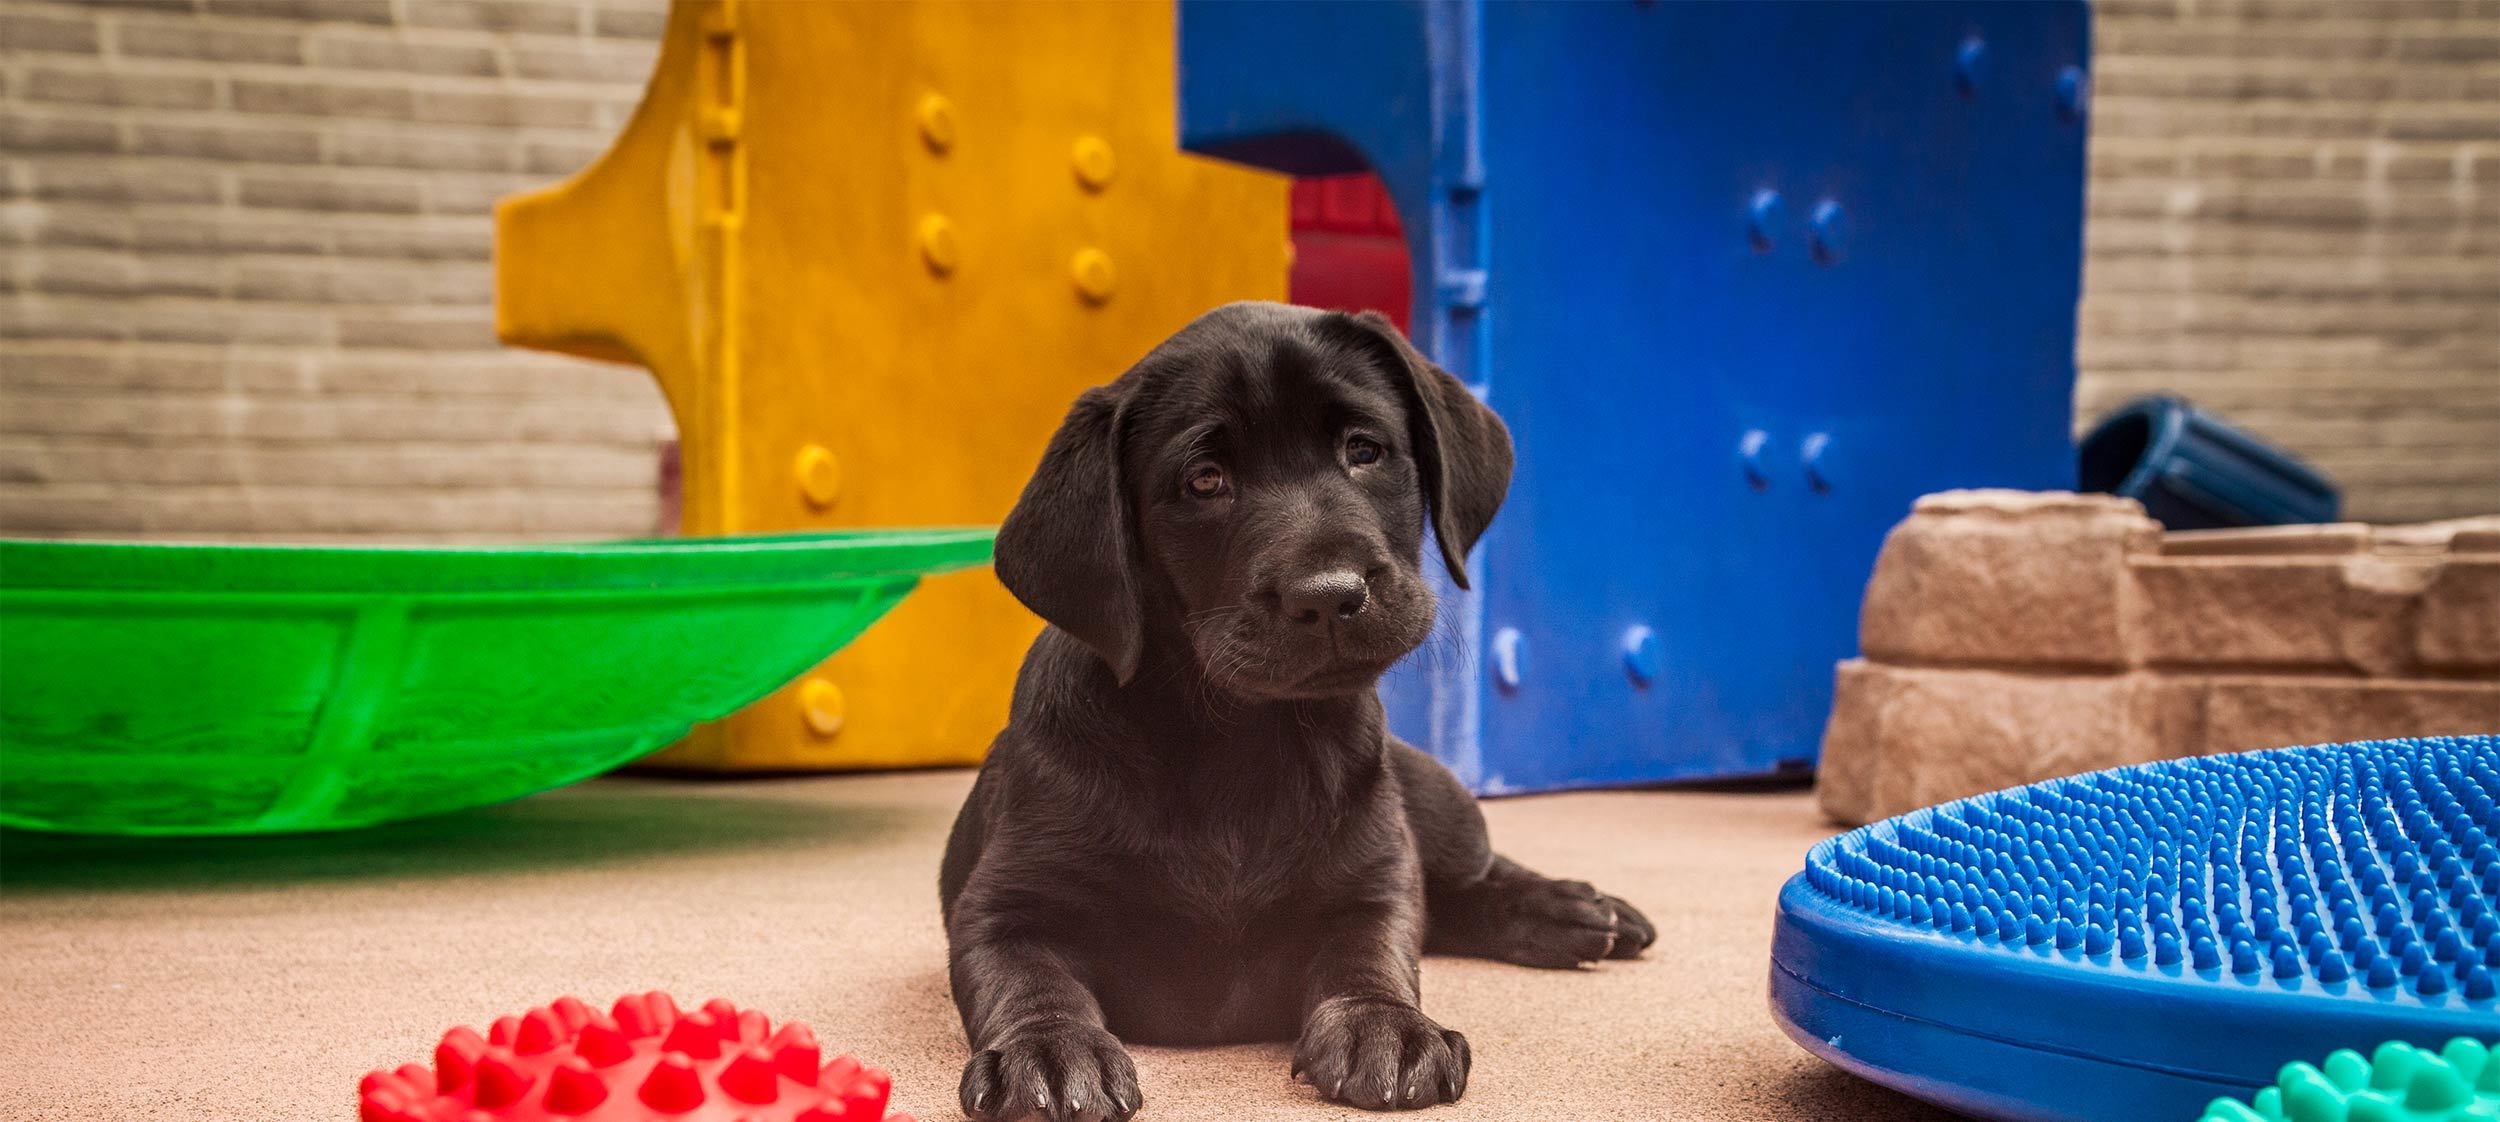 A black Lab guide dog puppy in the socialization yard on the San Rafael campus tilts its head looking directly at the camera (with colorful play structures in the background)